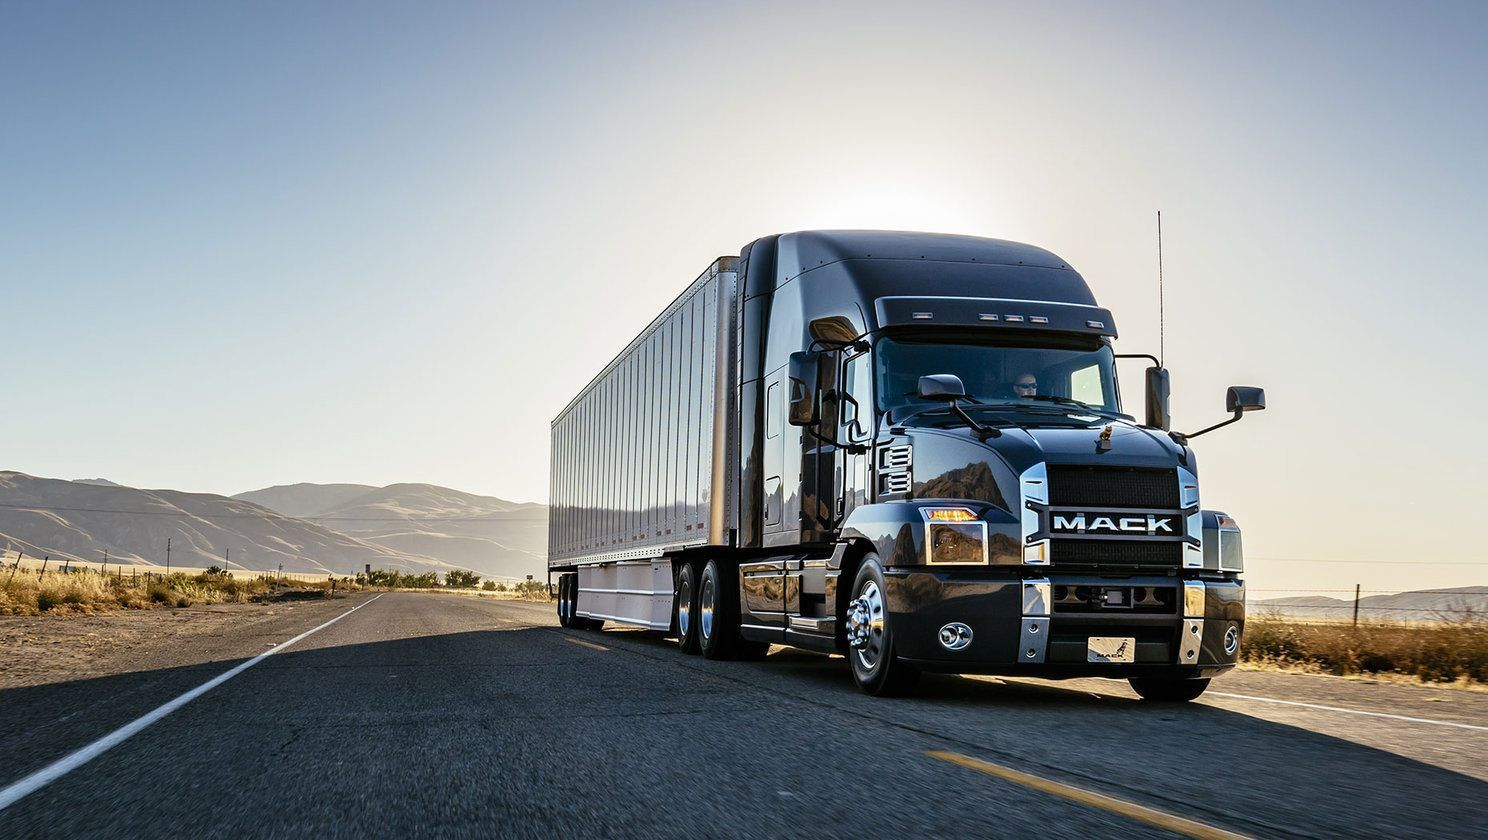 mack-truck Top 15 Rated Long-Distance Moving Companies in the USA